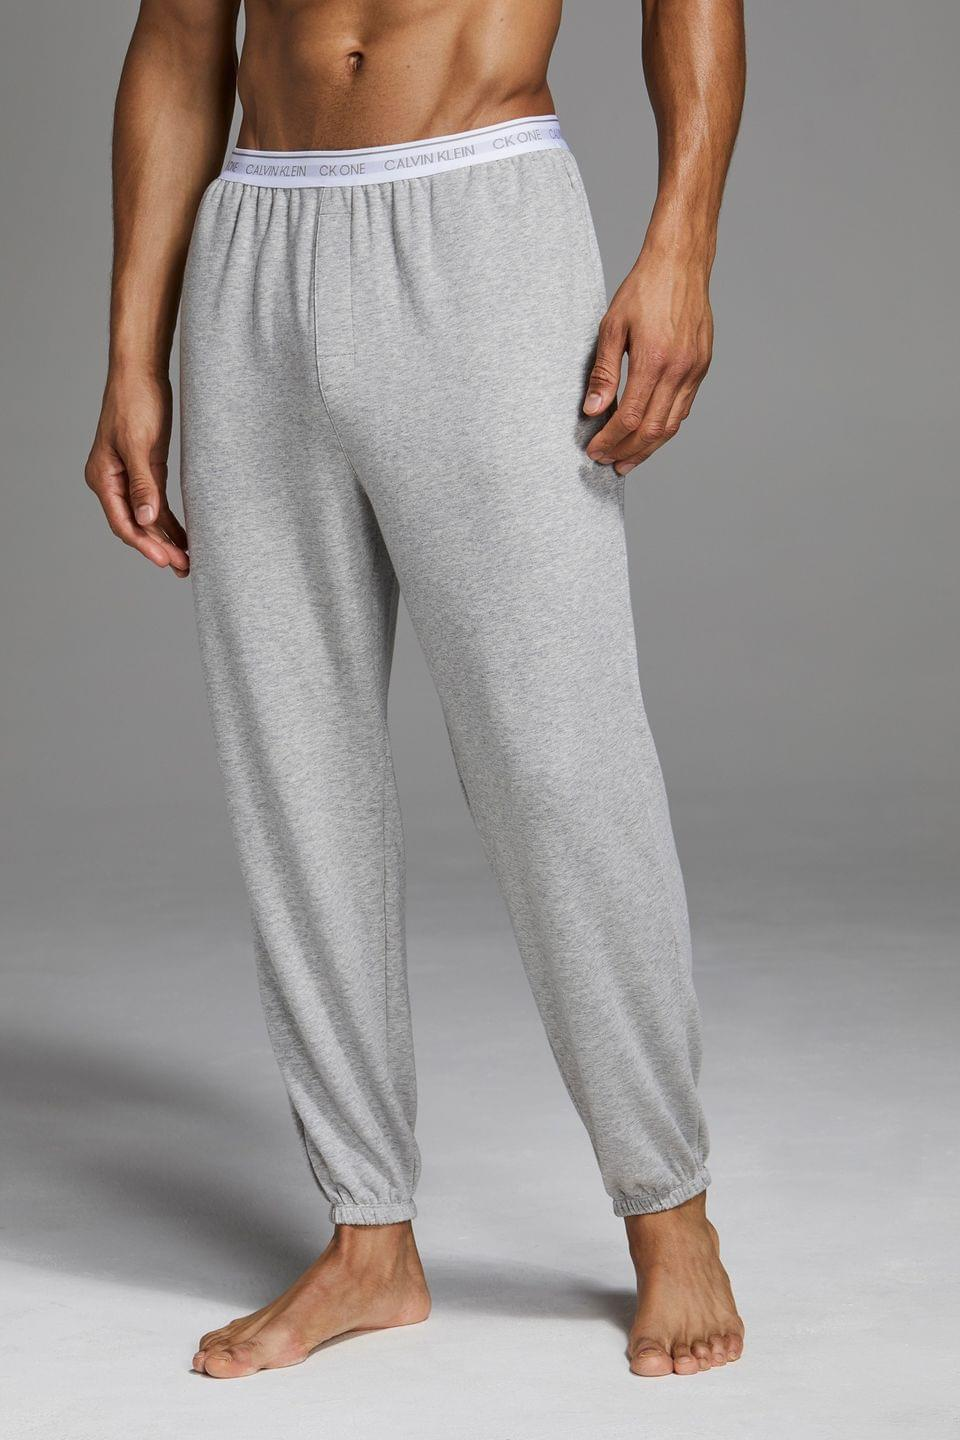 Men's Calvin Klein Grey Loungewear Joggers